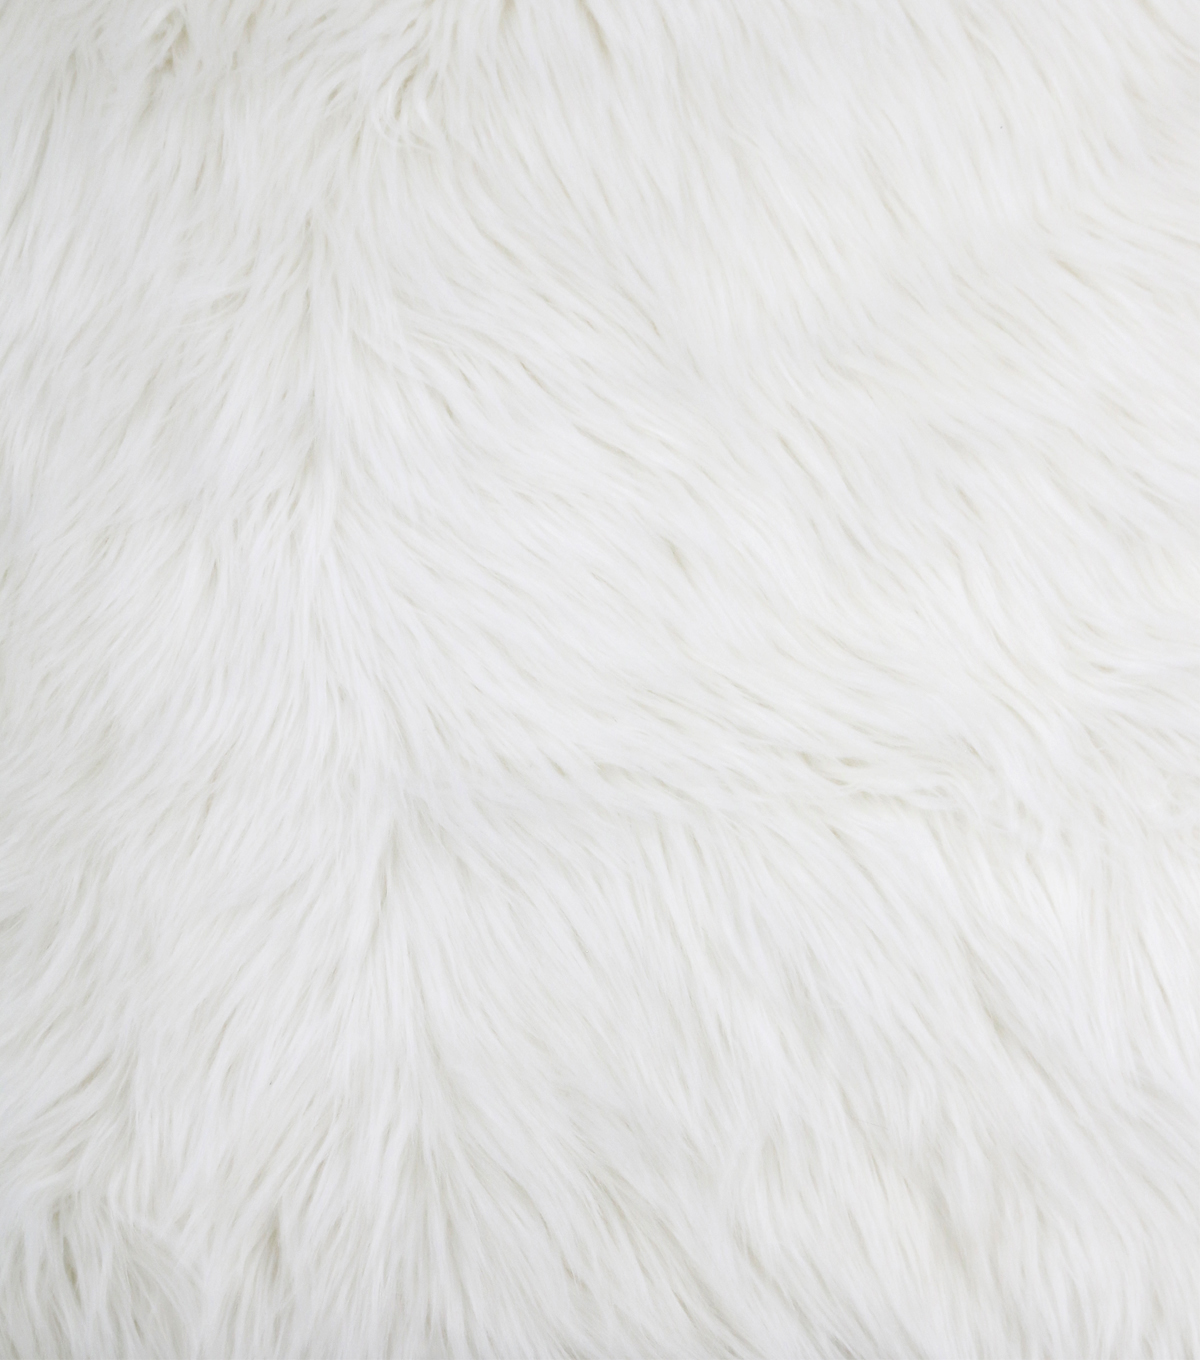 Luxury Faux Husky Fur Fabric White